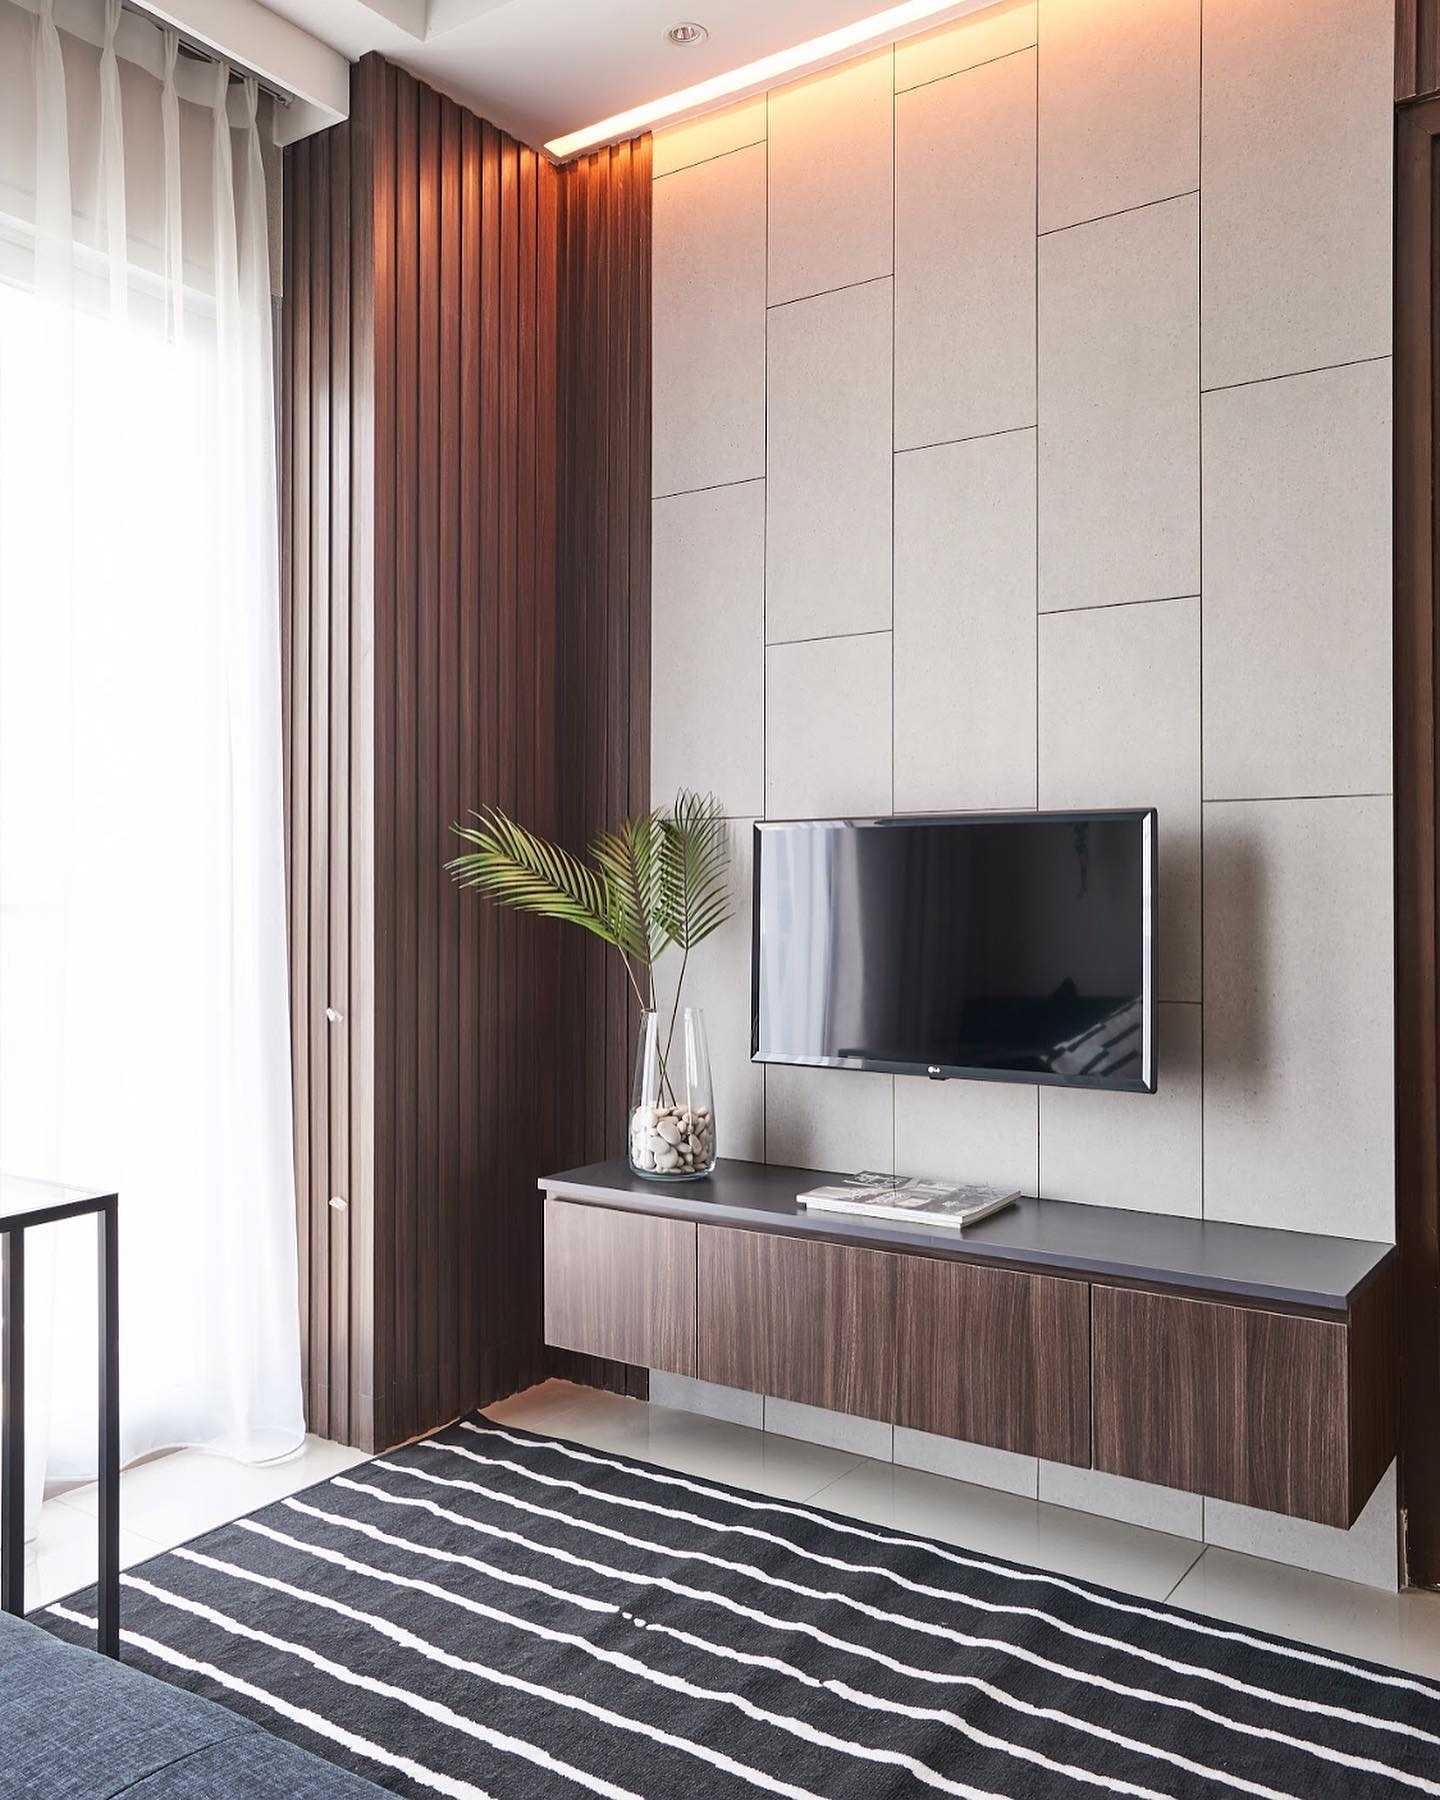 Studio Ig Interior Capitol Park Residence Jakarta Pusat, Kota Jakarta Pusat, Daerah Khusus Ibukota Jakarta, Indonesia Jakarta Pusat, Kota Jakarta Pusat, Daerah Khusus Ibukota Jakarta, Indonesia Capitol Park Residence - Project Minimalist Wood Flatted Panel Combined With Concrete Make These Area Looks High And Bigger 81792